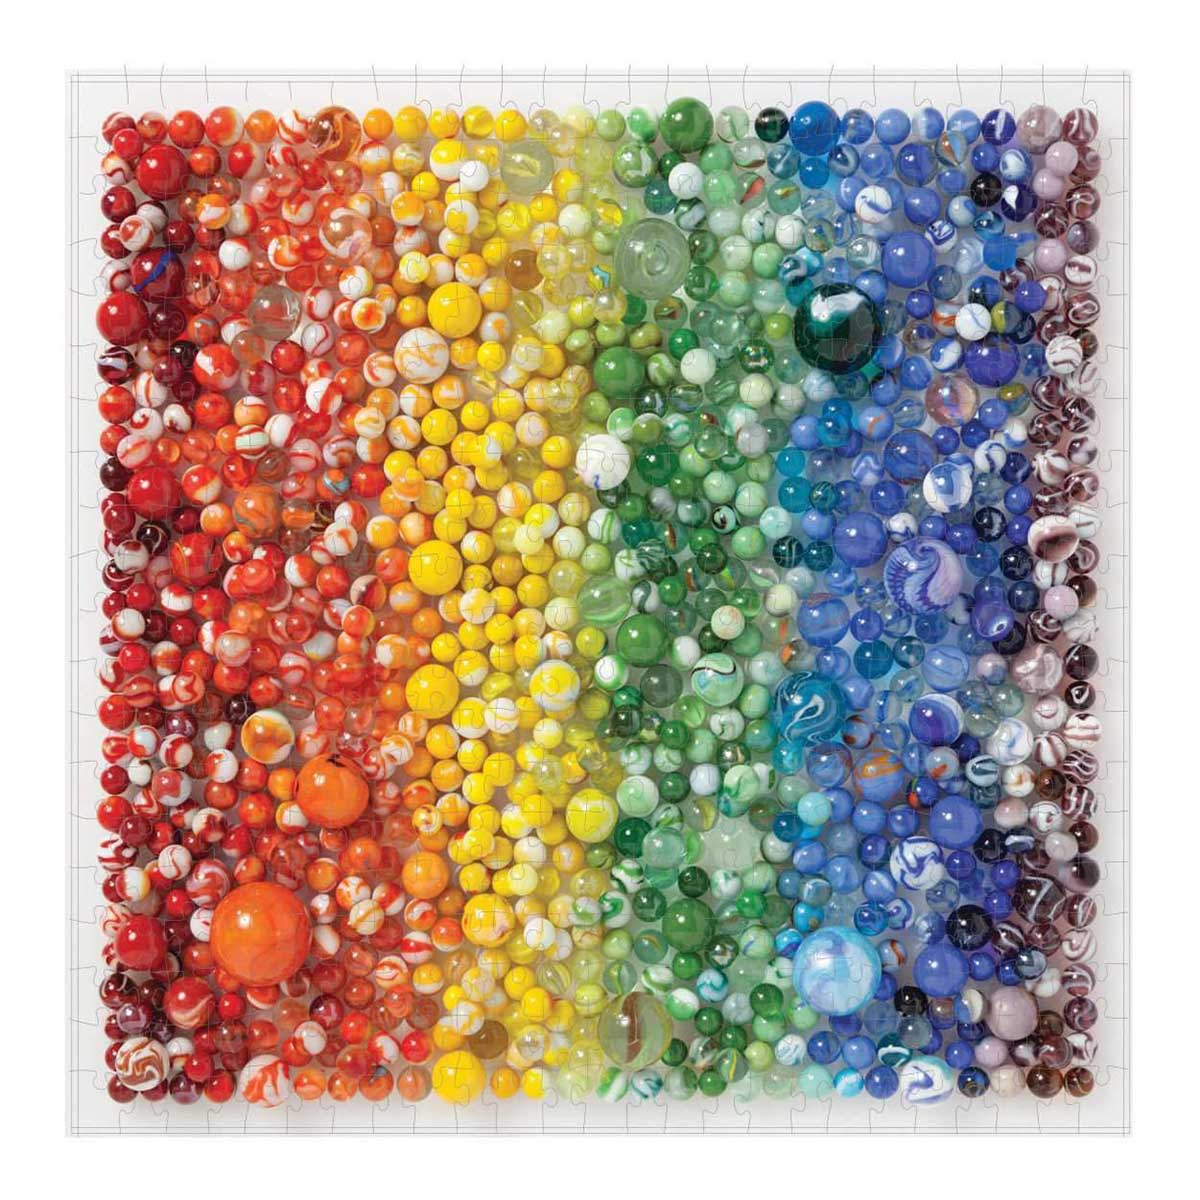 Rainbow Marbles Pattern / Assortment Jigsaw Puzzle